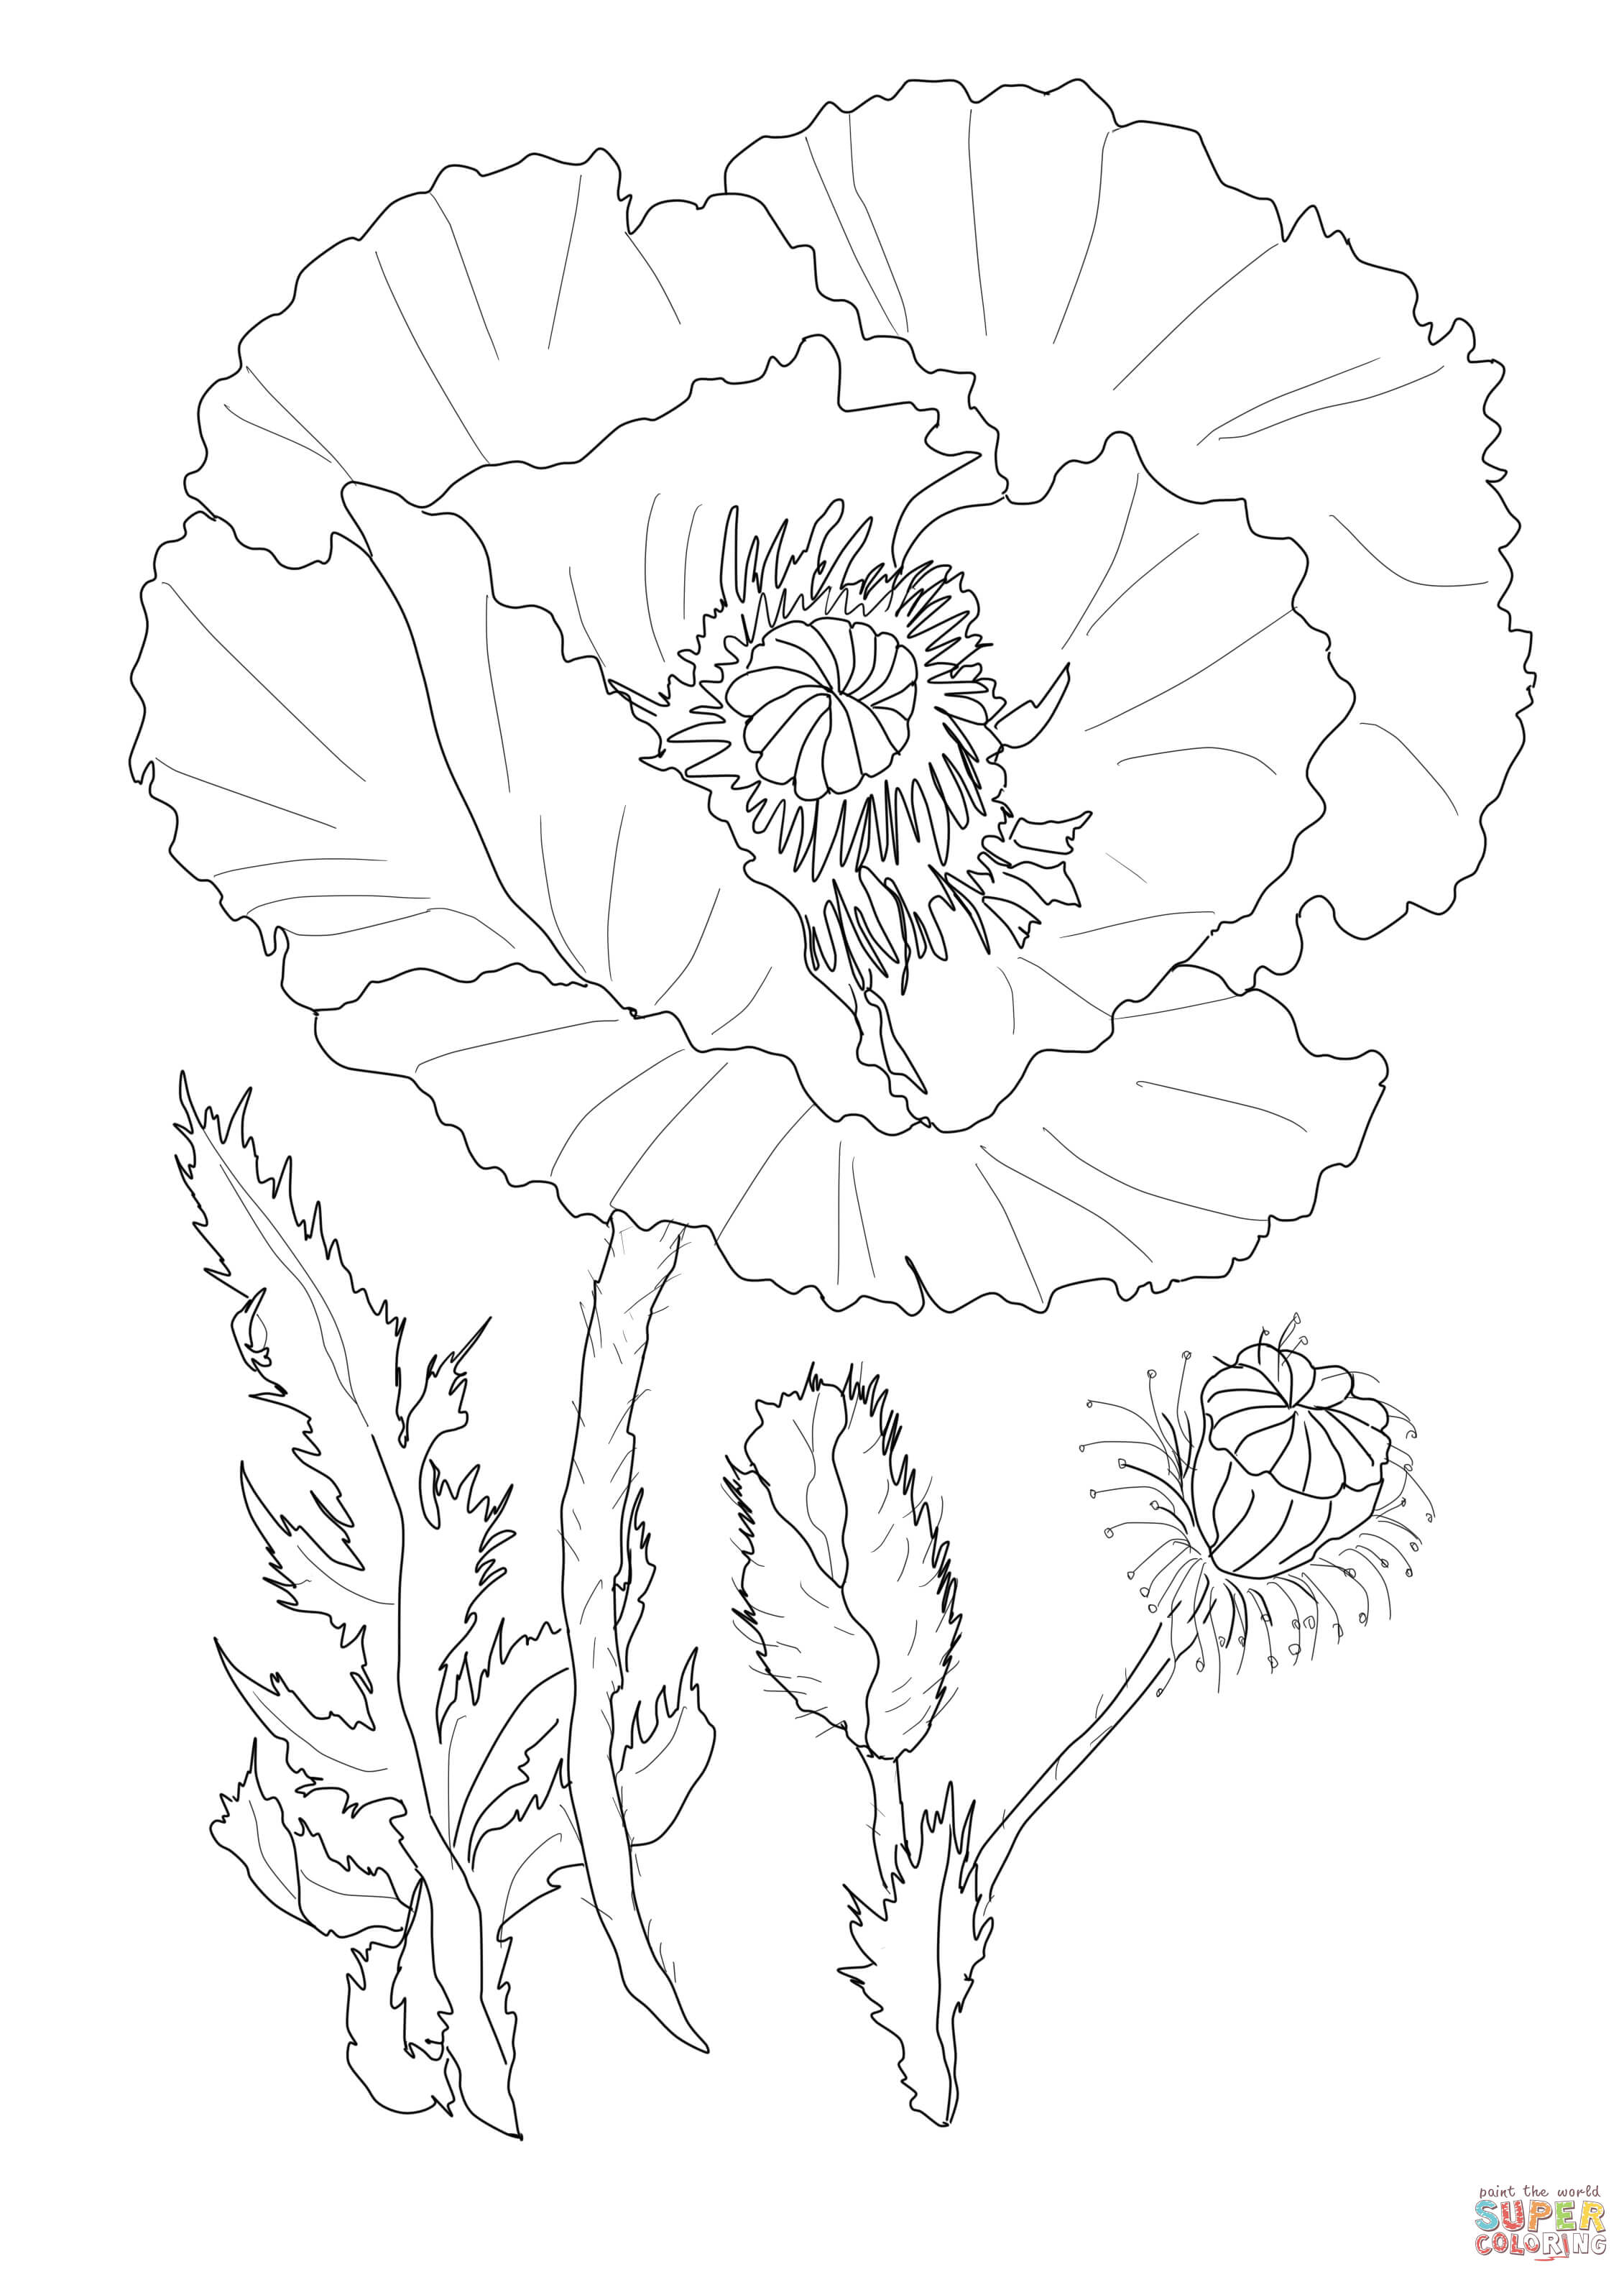 1000+ images about line art on Pinterest